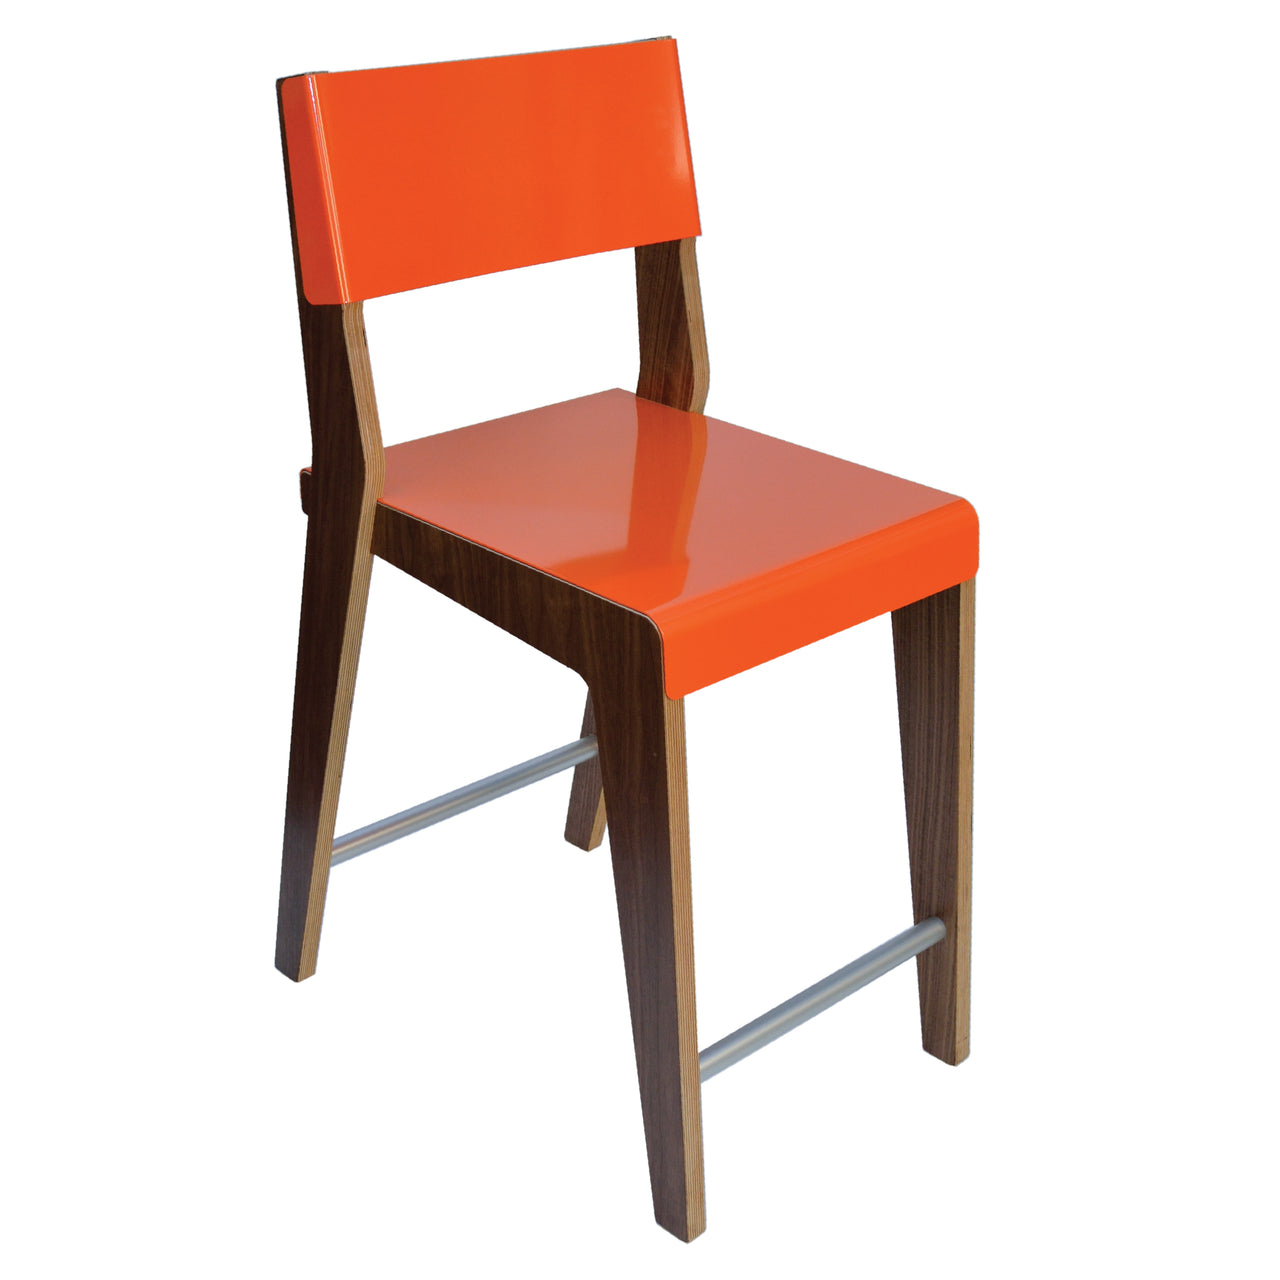 Lock Bar + Counter Stool: Counter + Orange + Walnut